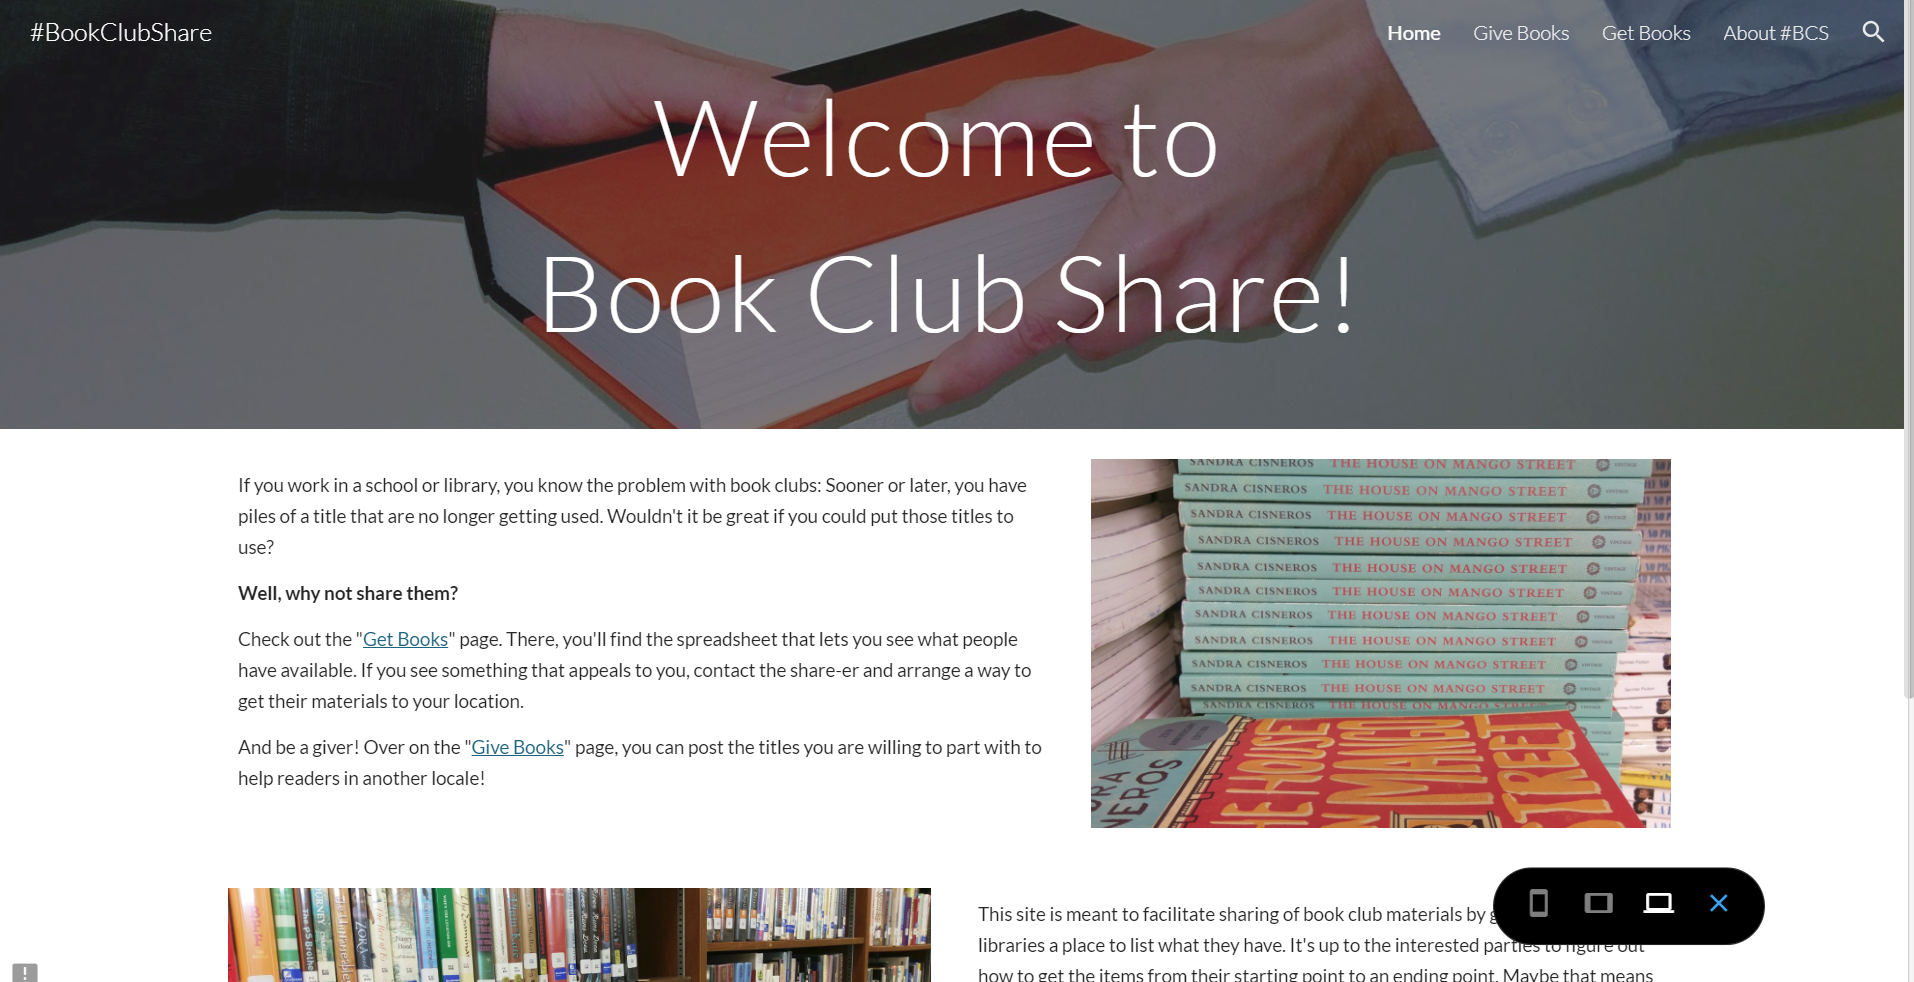 BookClubShare.com's Home page